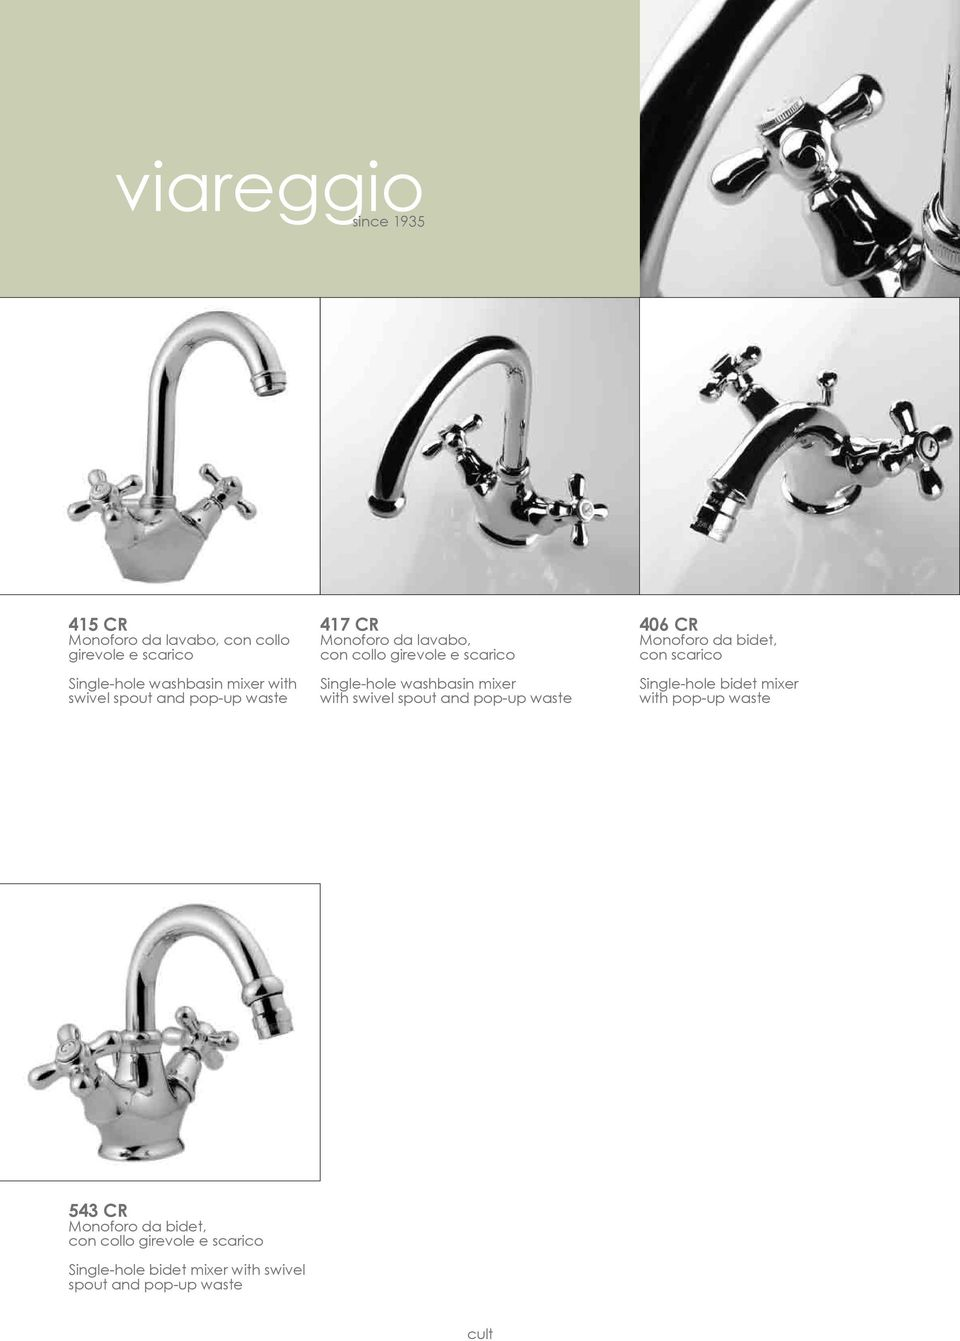 mixer with swivel spout and pop-up waste 406 CR Monoforo da bidet, con scarico Single-hole bidet mixer with